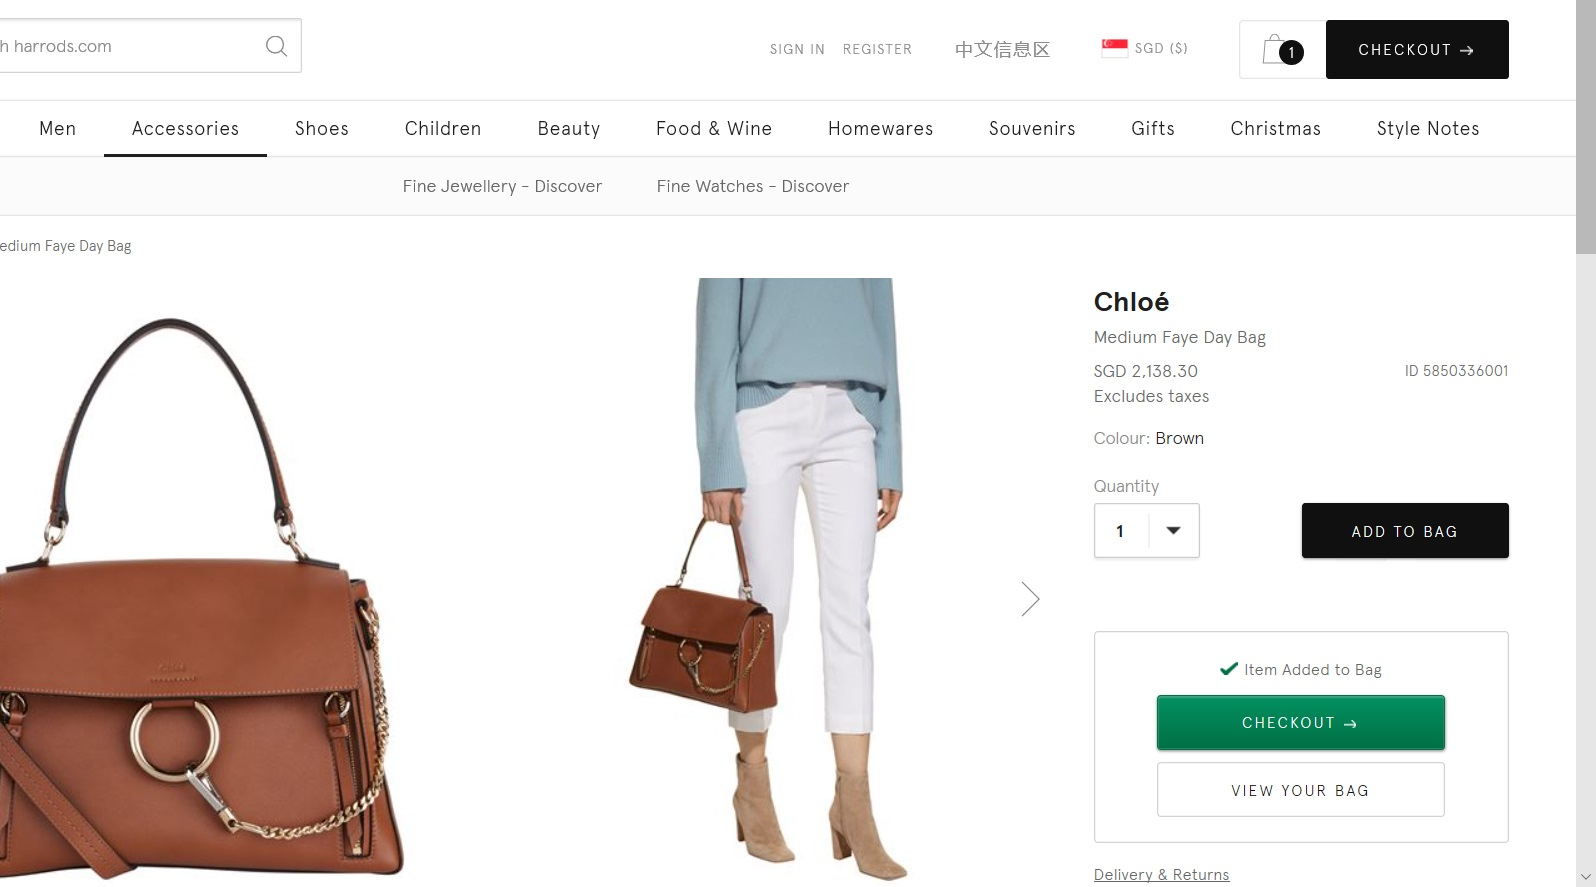 Women s bag added to cart.